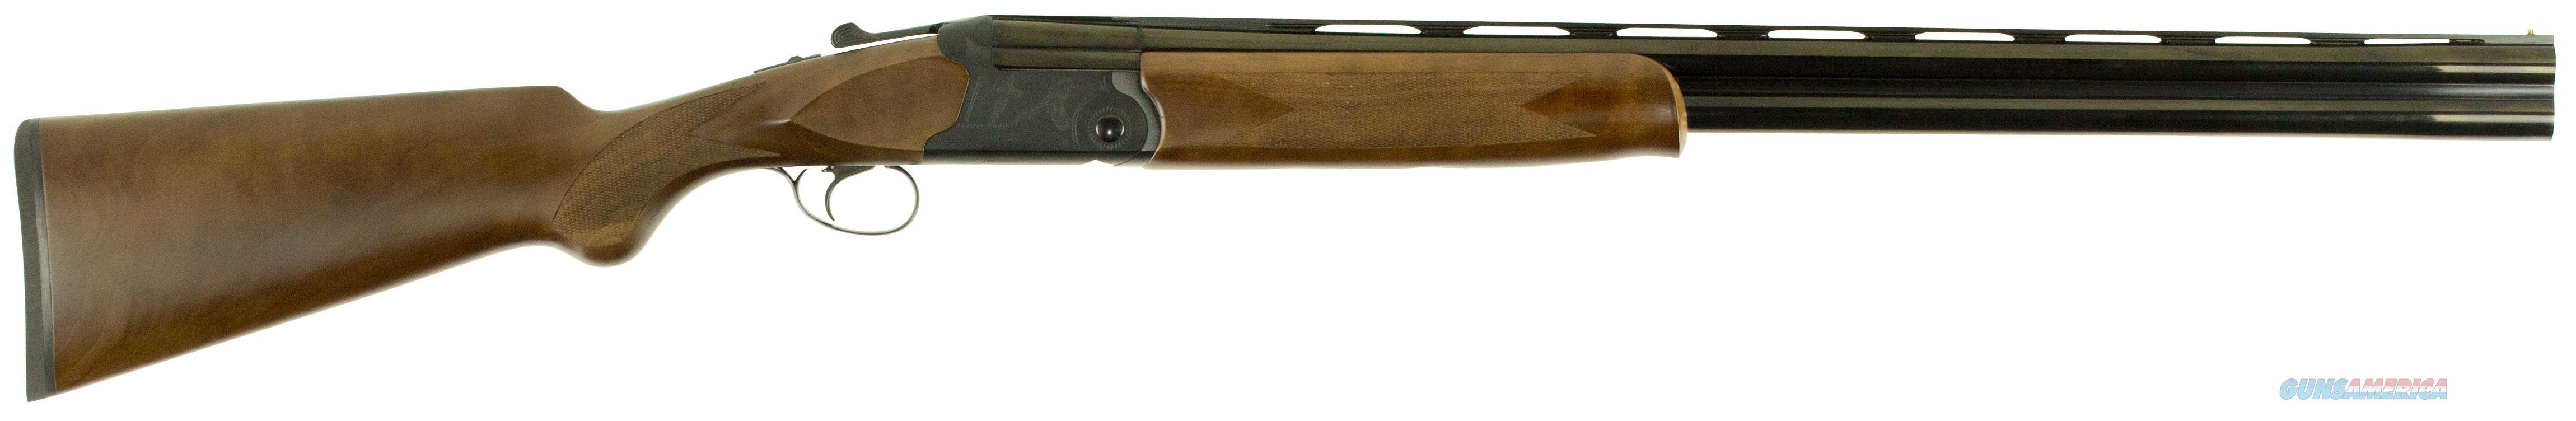 "Dickinson Oahntr Oa Over/Under 12 Gauge 28"" 3"" Wood Stk Black Aluminum Alloy Rcvr OAHNTR  Guns > Rifles > D Misc Rifles"